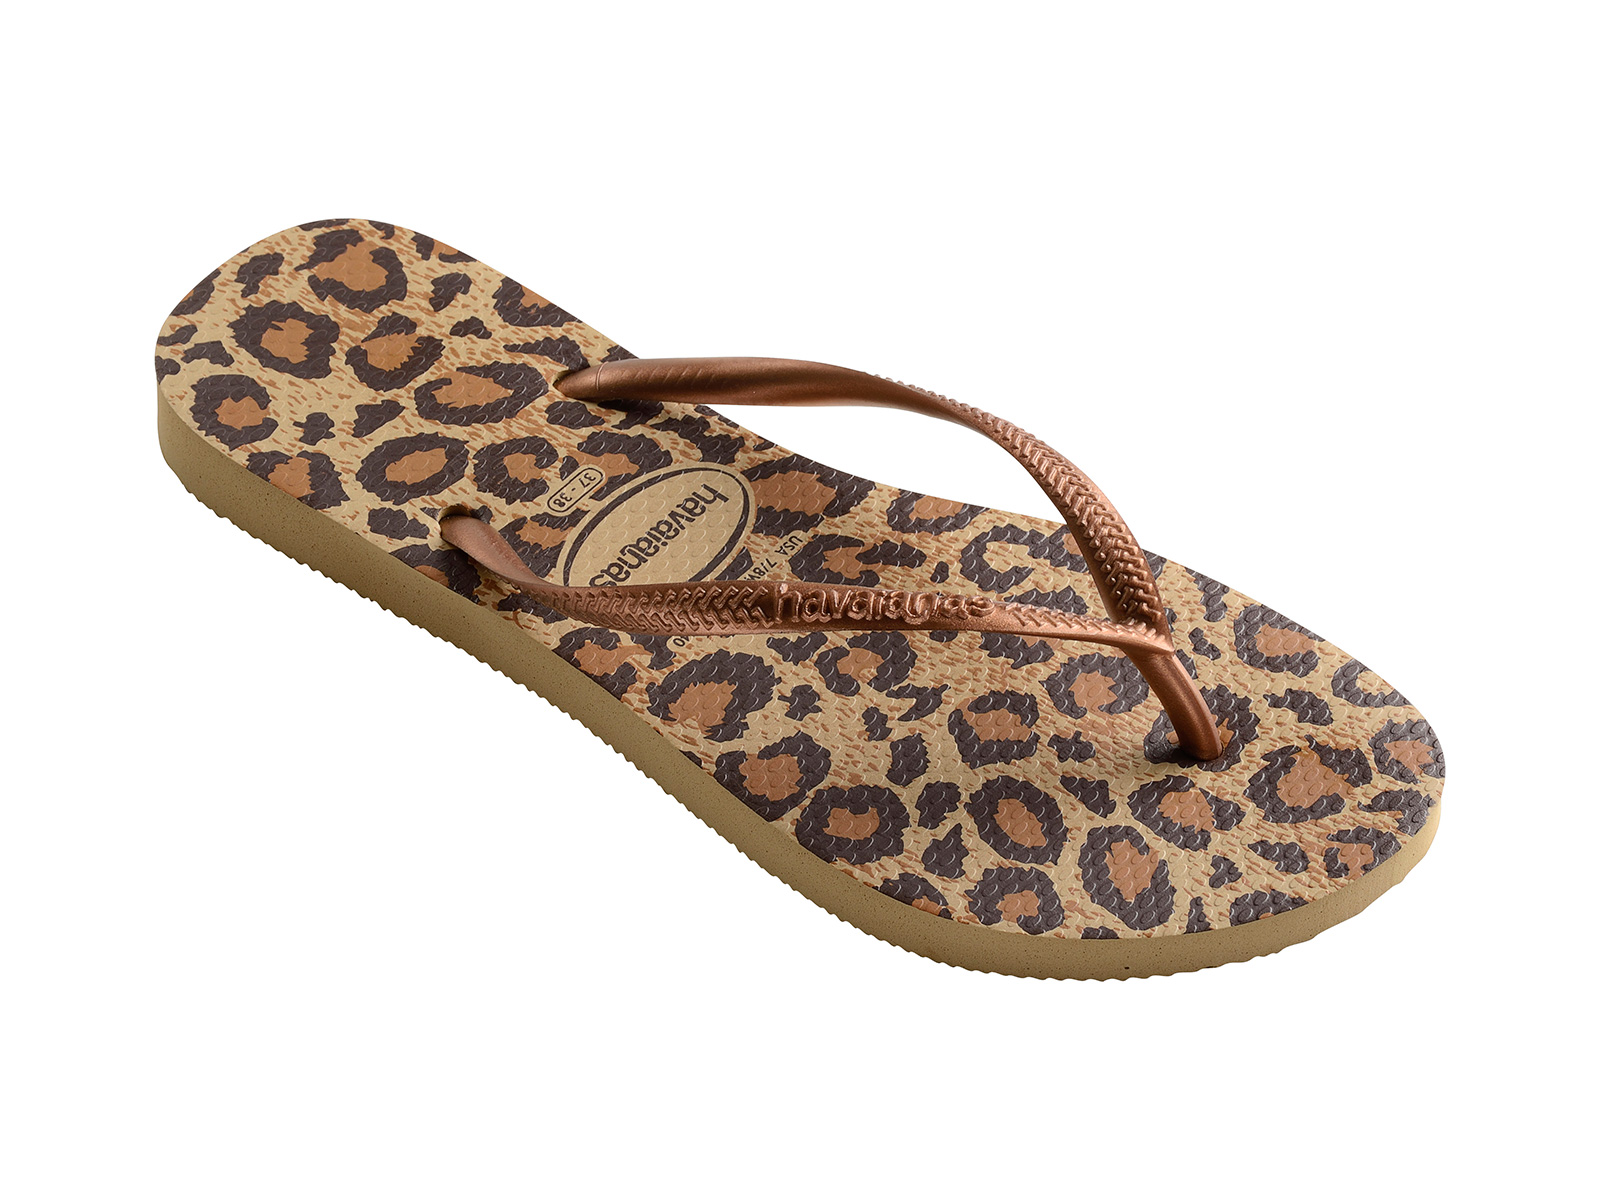 d4f8dd040a090b Flip-Flops Beige And Brown Leopard Flip-flops - Slim Animals Beige